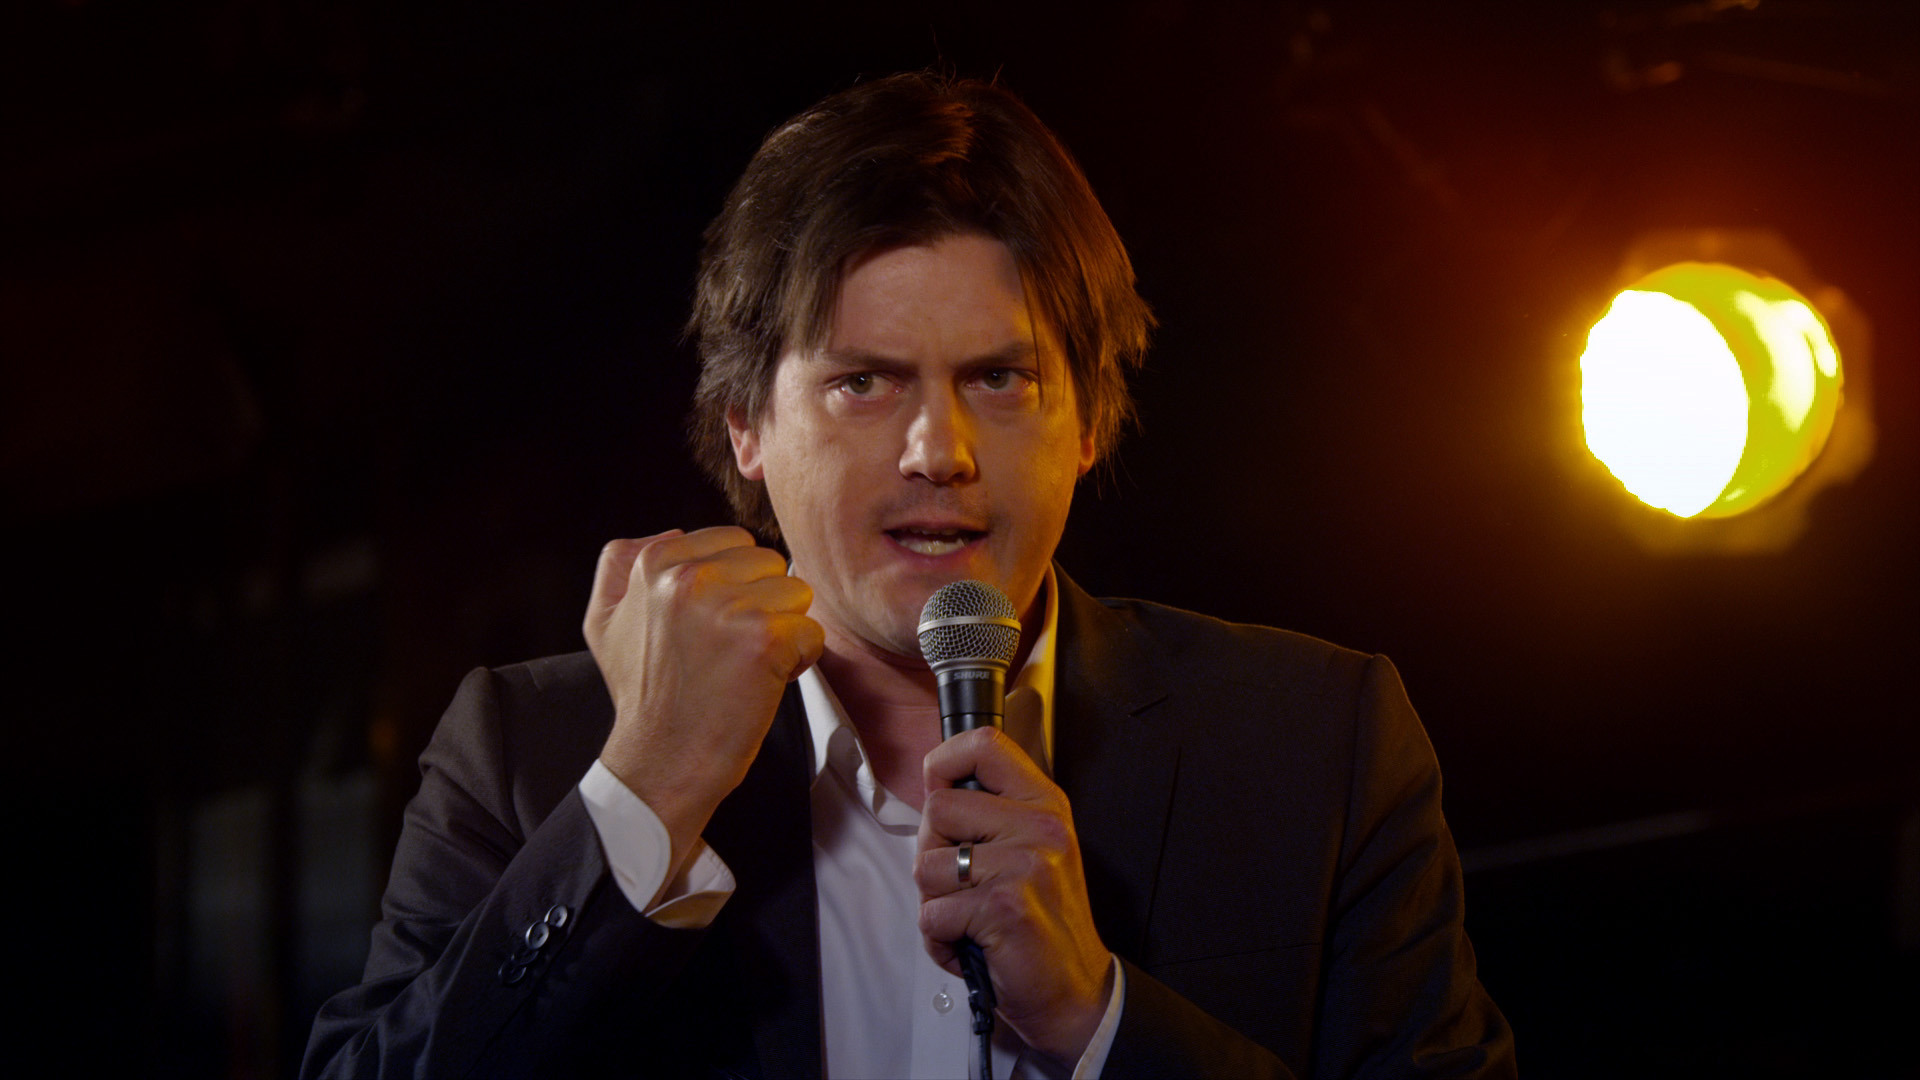 Uncensored - Trevor Moore Escapes From Mexico